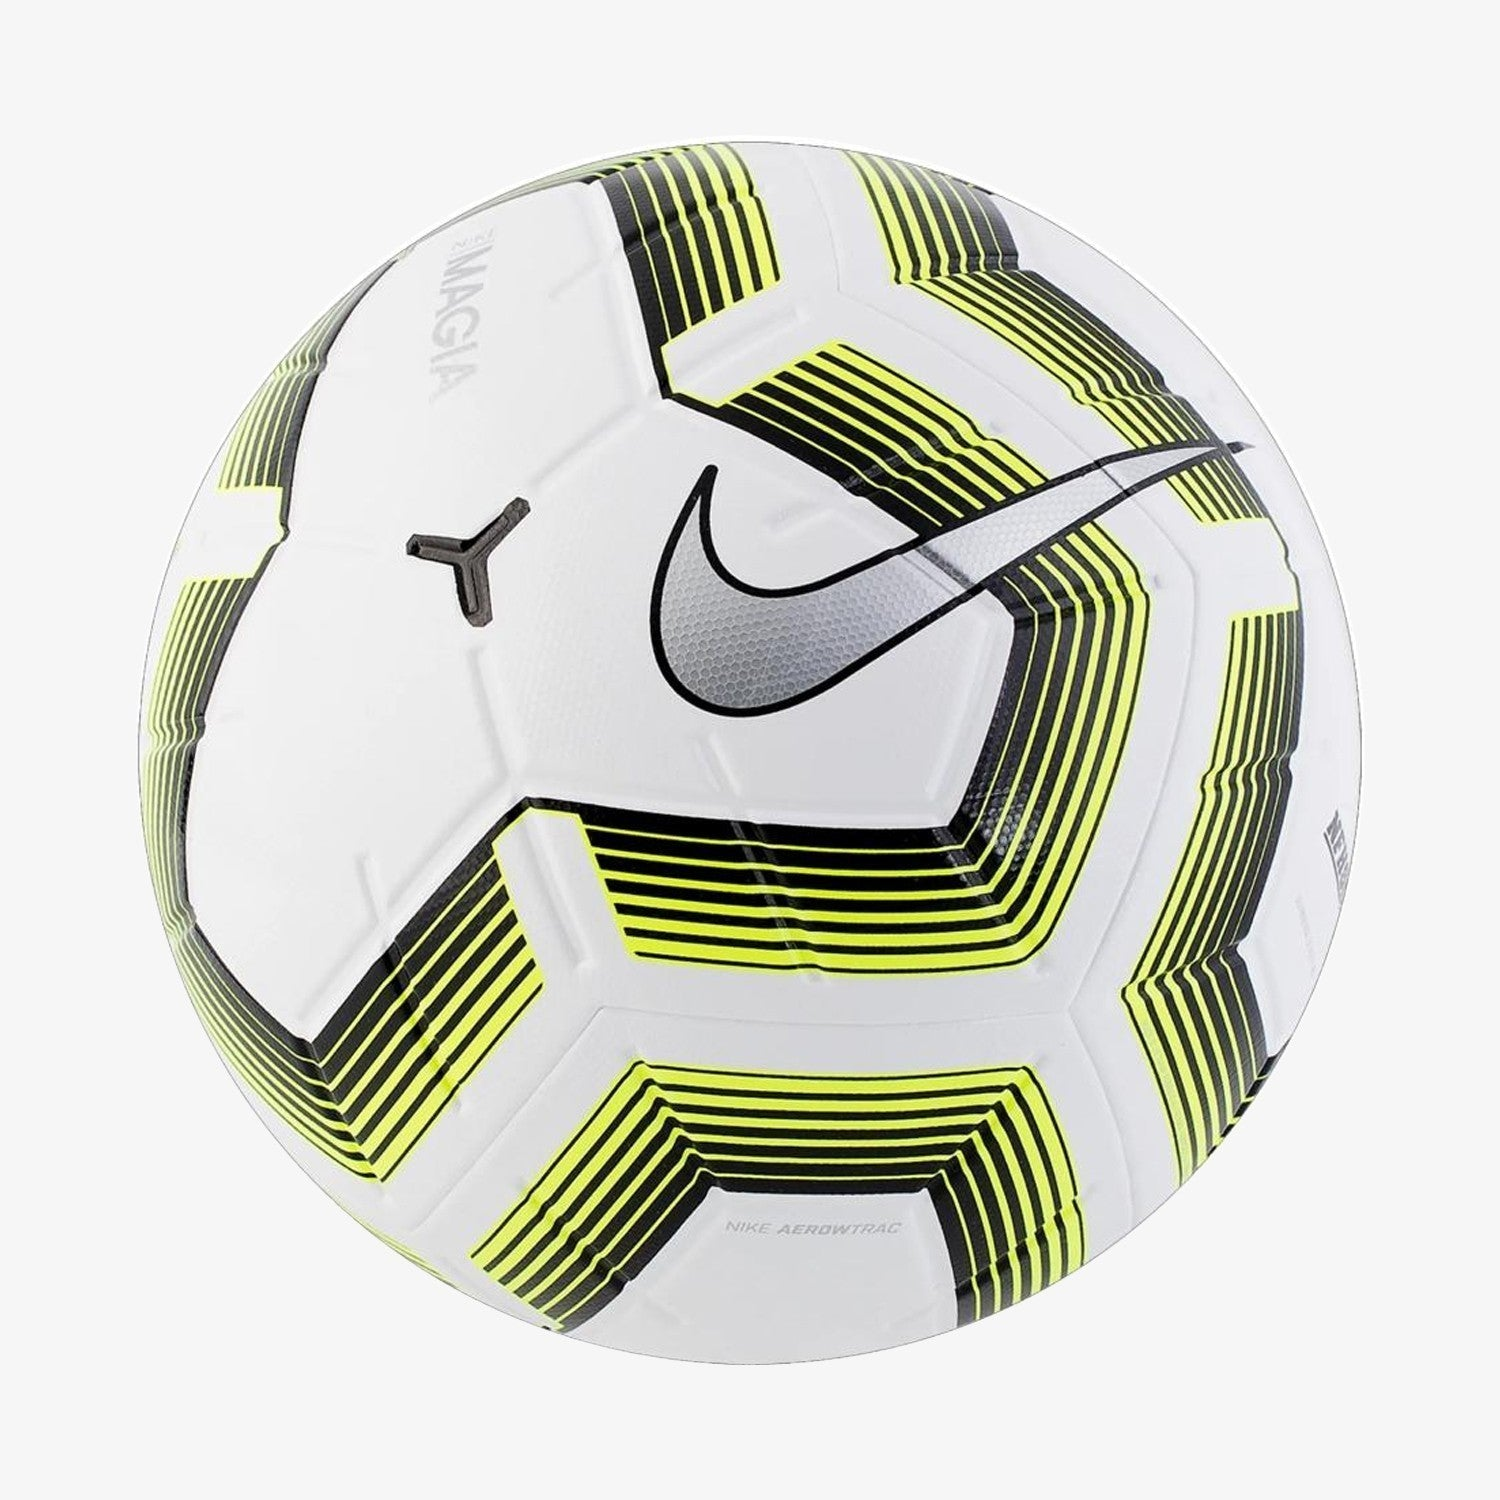 Magia II Team NFHS Soccer Ball - White/Black/Volt